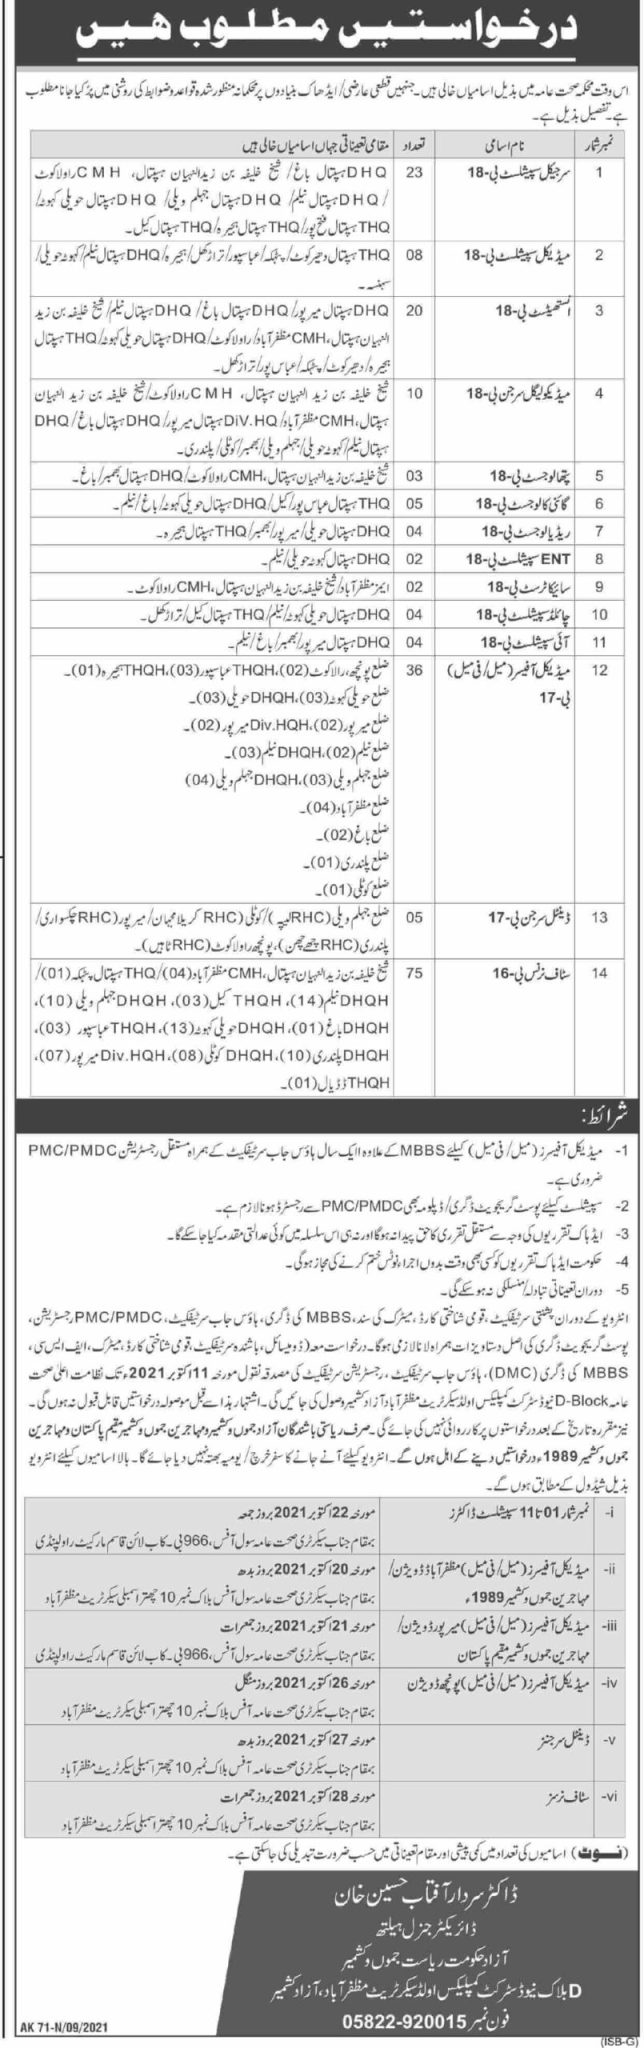 New Government Jobs 2021 At Health Department AJK